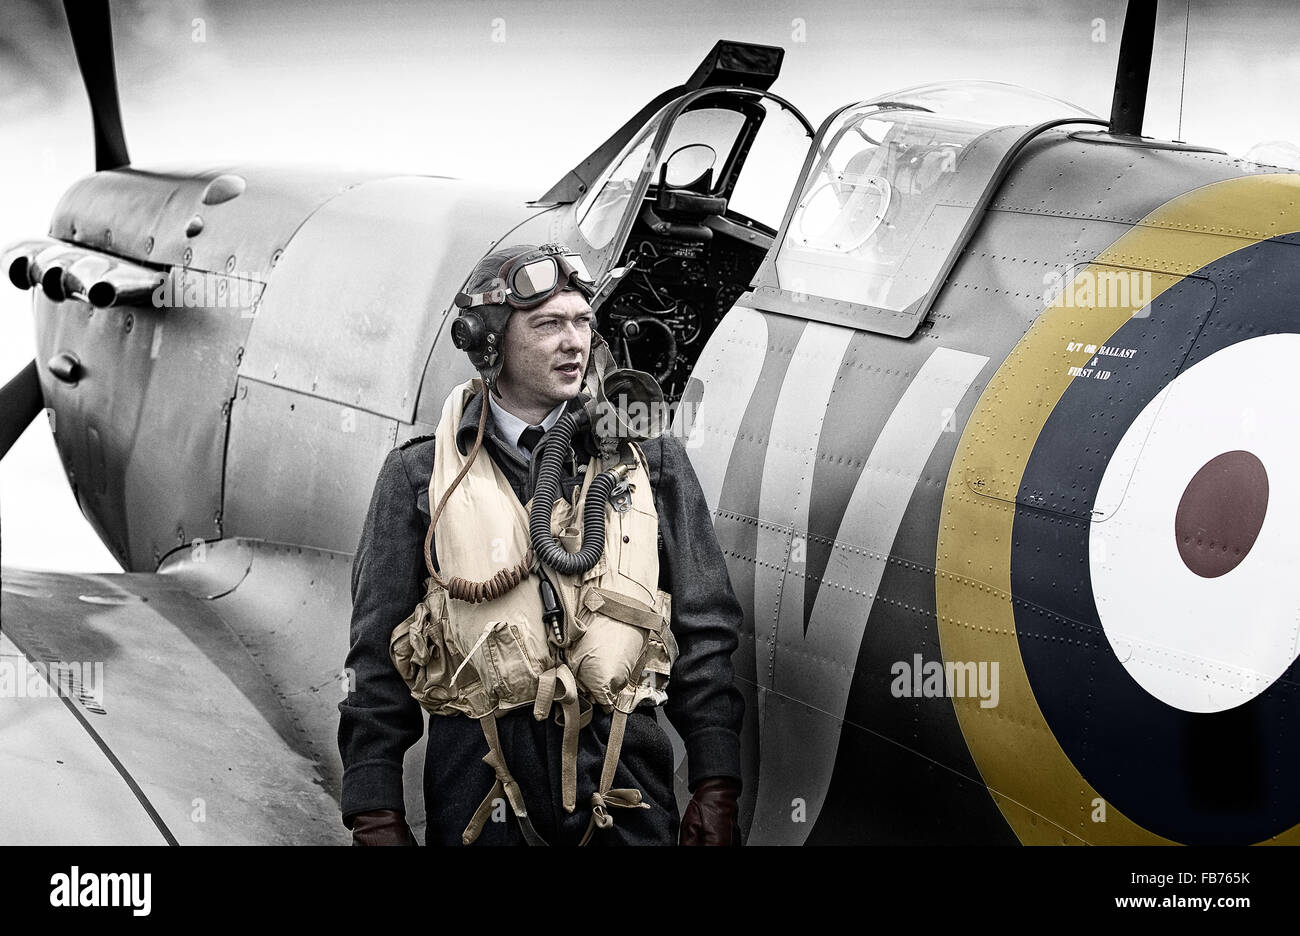 RAF WW2 Pilot with Spitfire - Stock Image